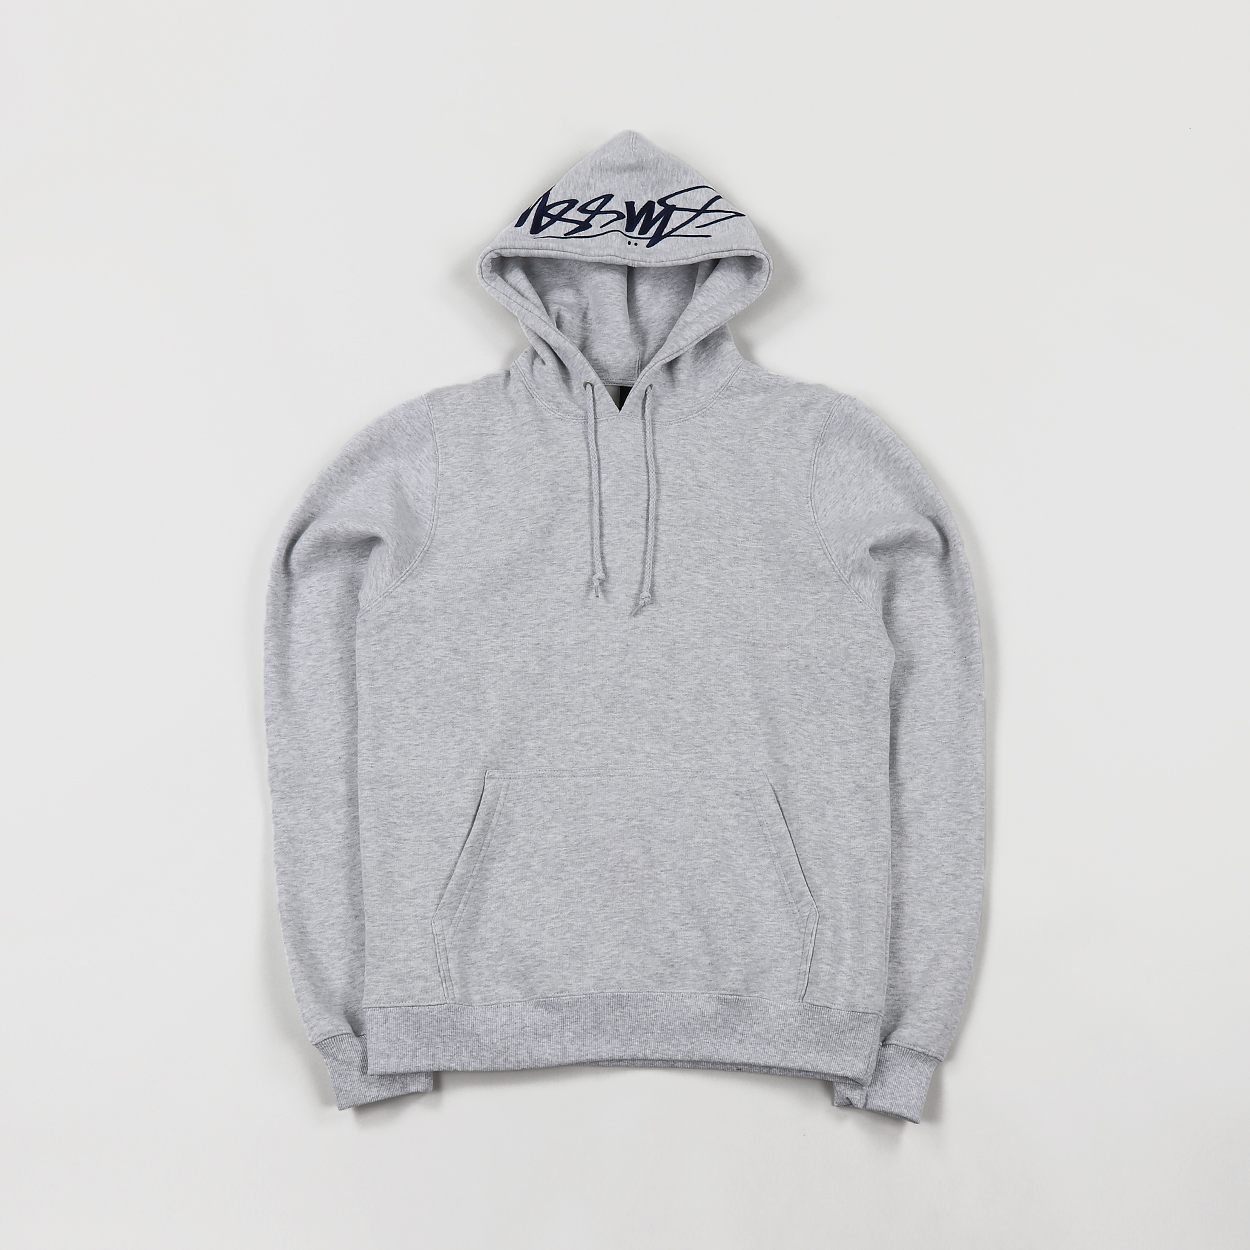 7eb1d2ad1 Stussy Mens Smooth Stock Applique Logo Hoodie Grey Heather £78.00